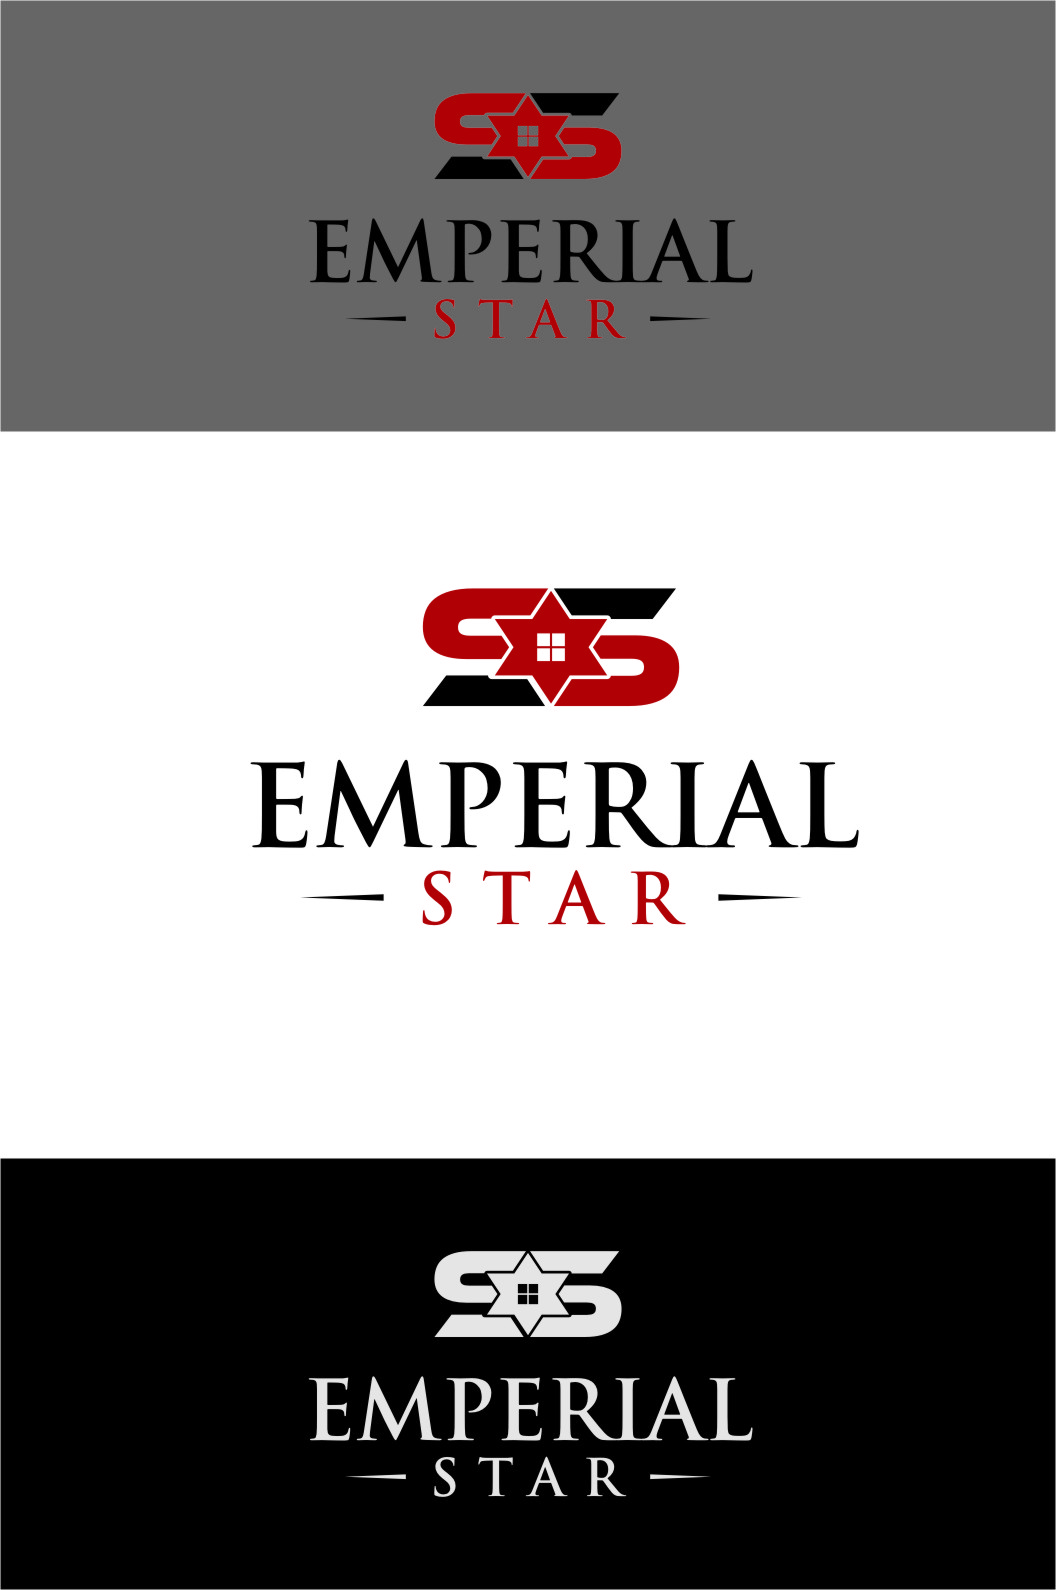 Logo Design by RasYa Muhammad Athaya - Entry No. 83 in the Logo Design Contest Emperial Star Logo Design.